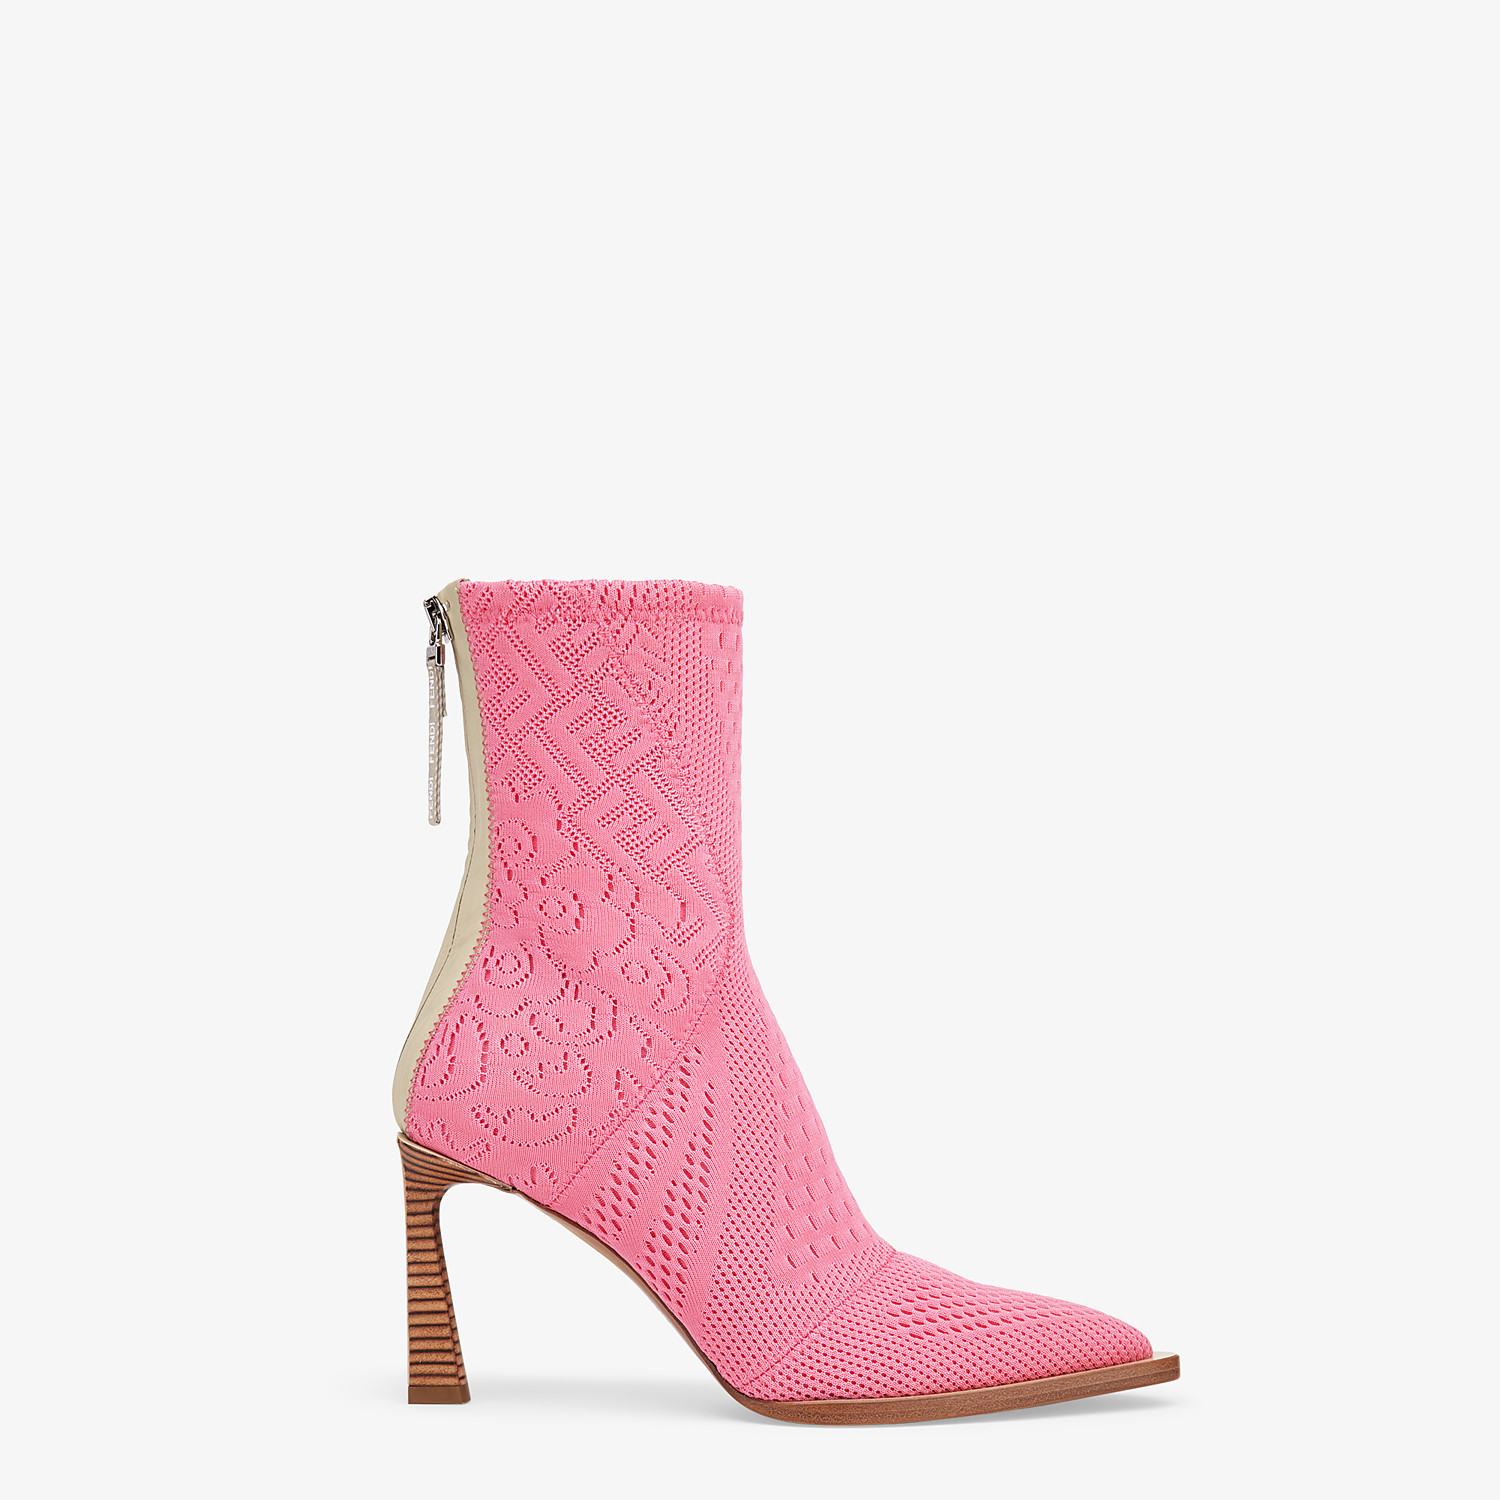 FENDI ANKLE BOOTS -  - view 1 detail